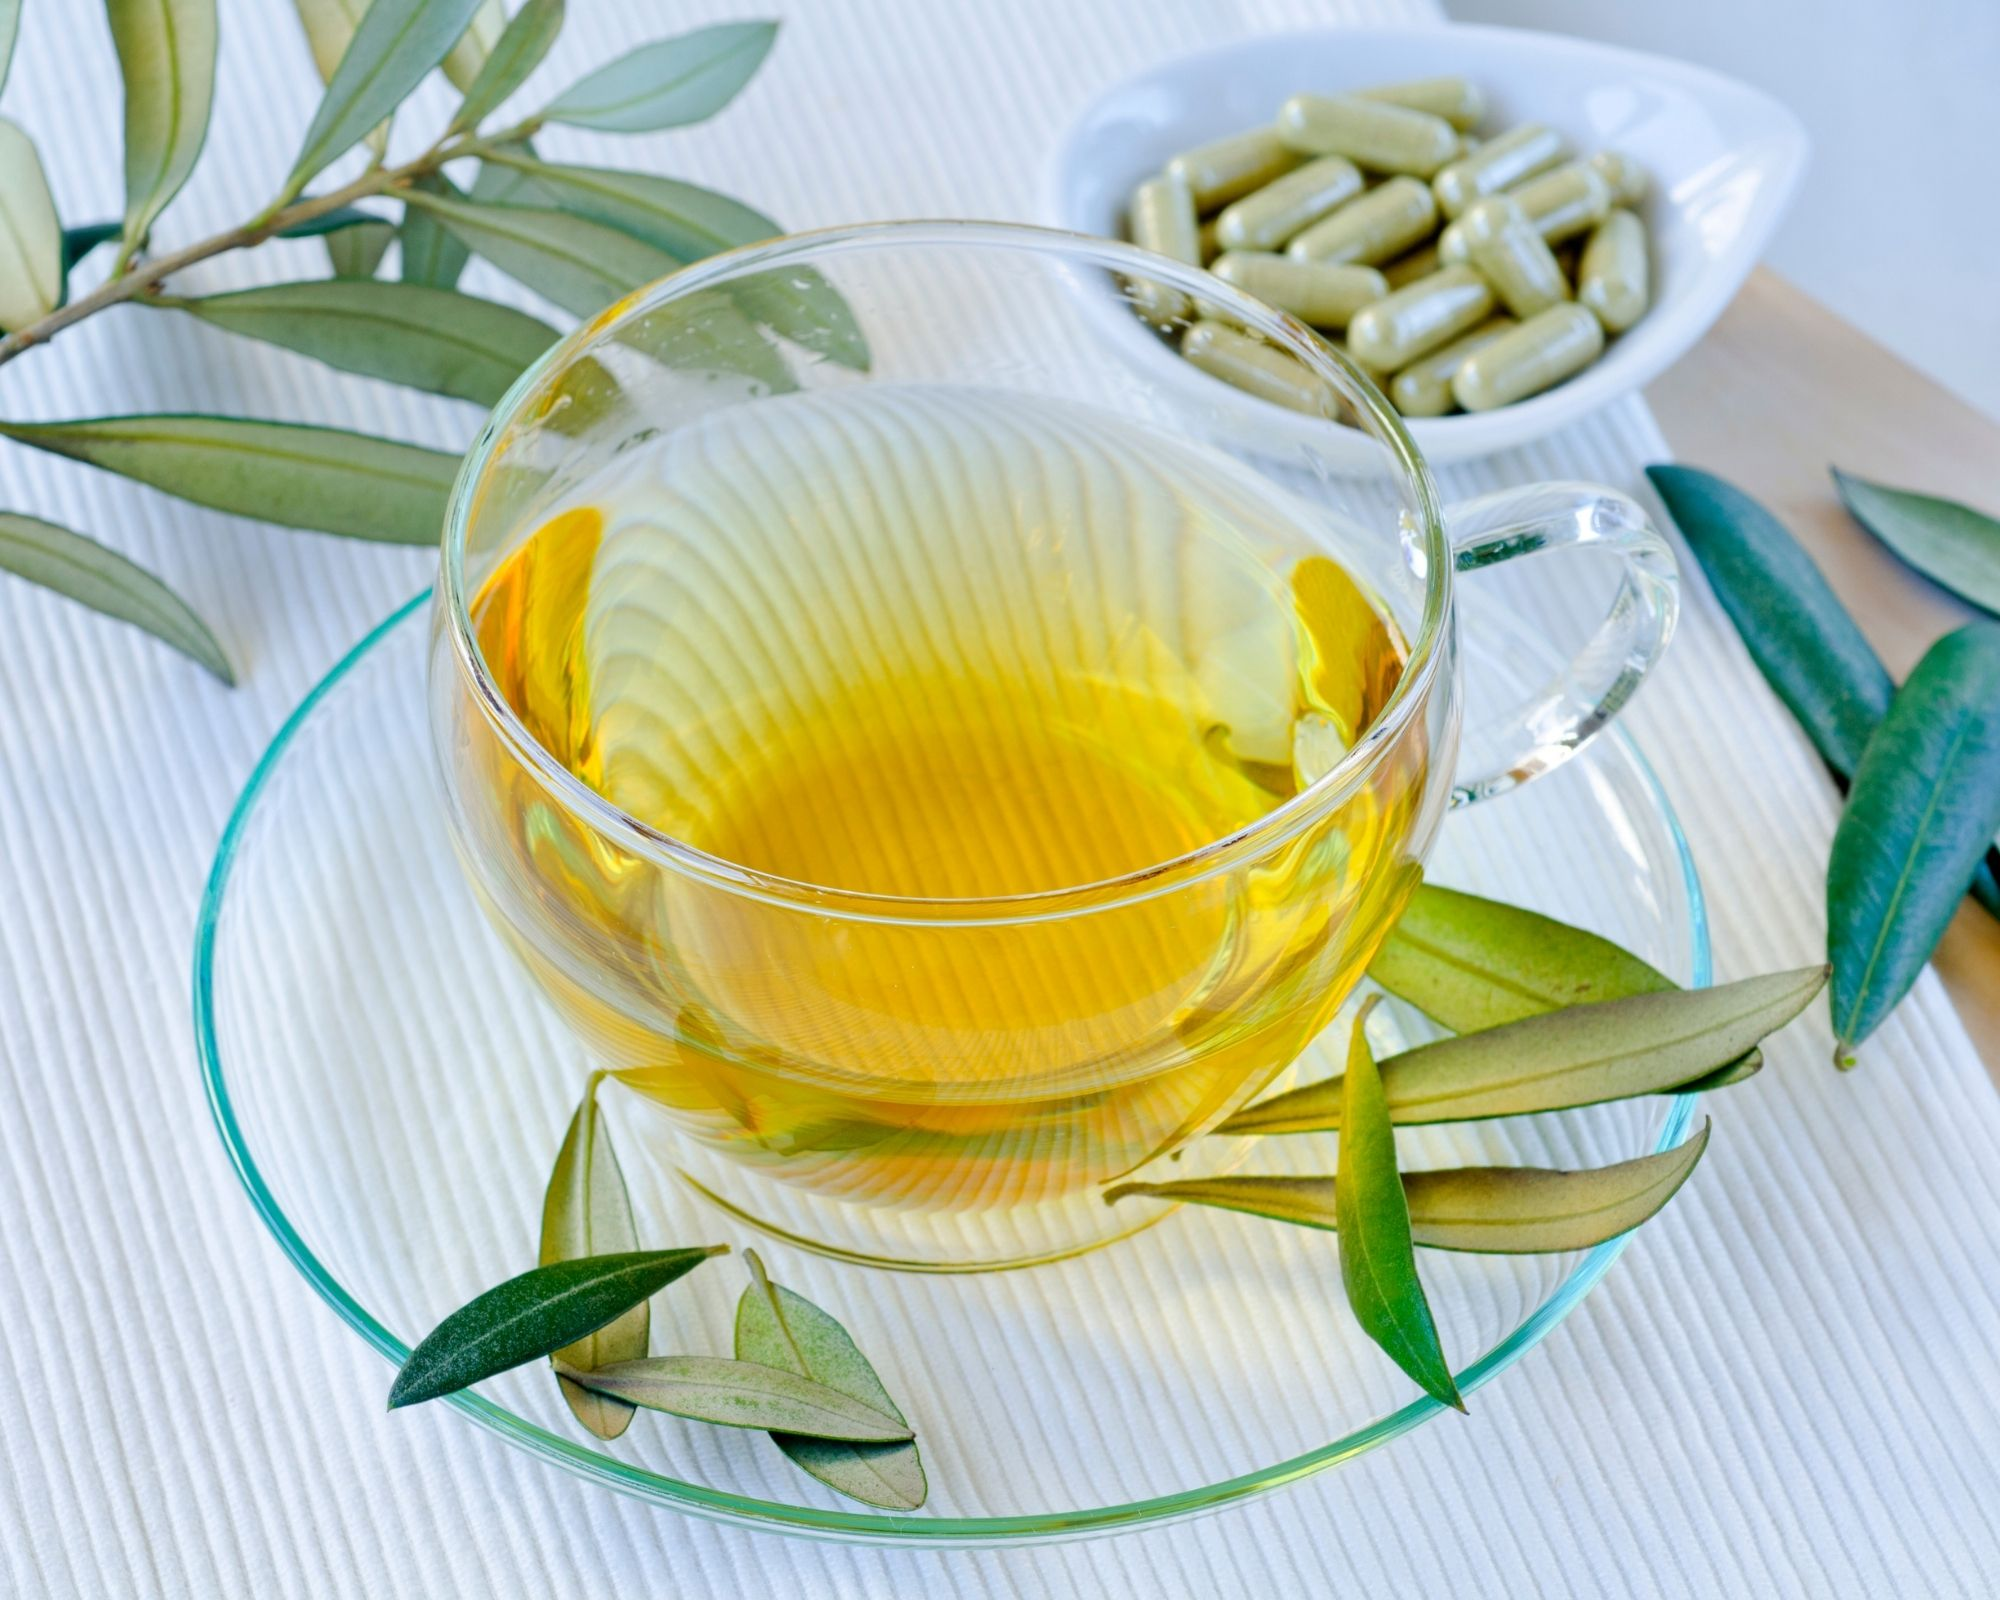 Olive Leaf Extract - Part of the formula